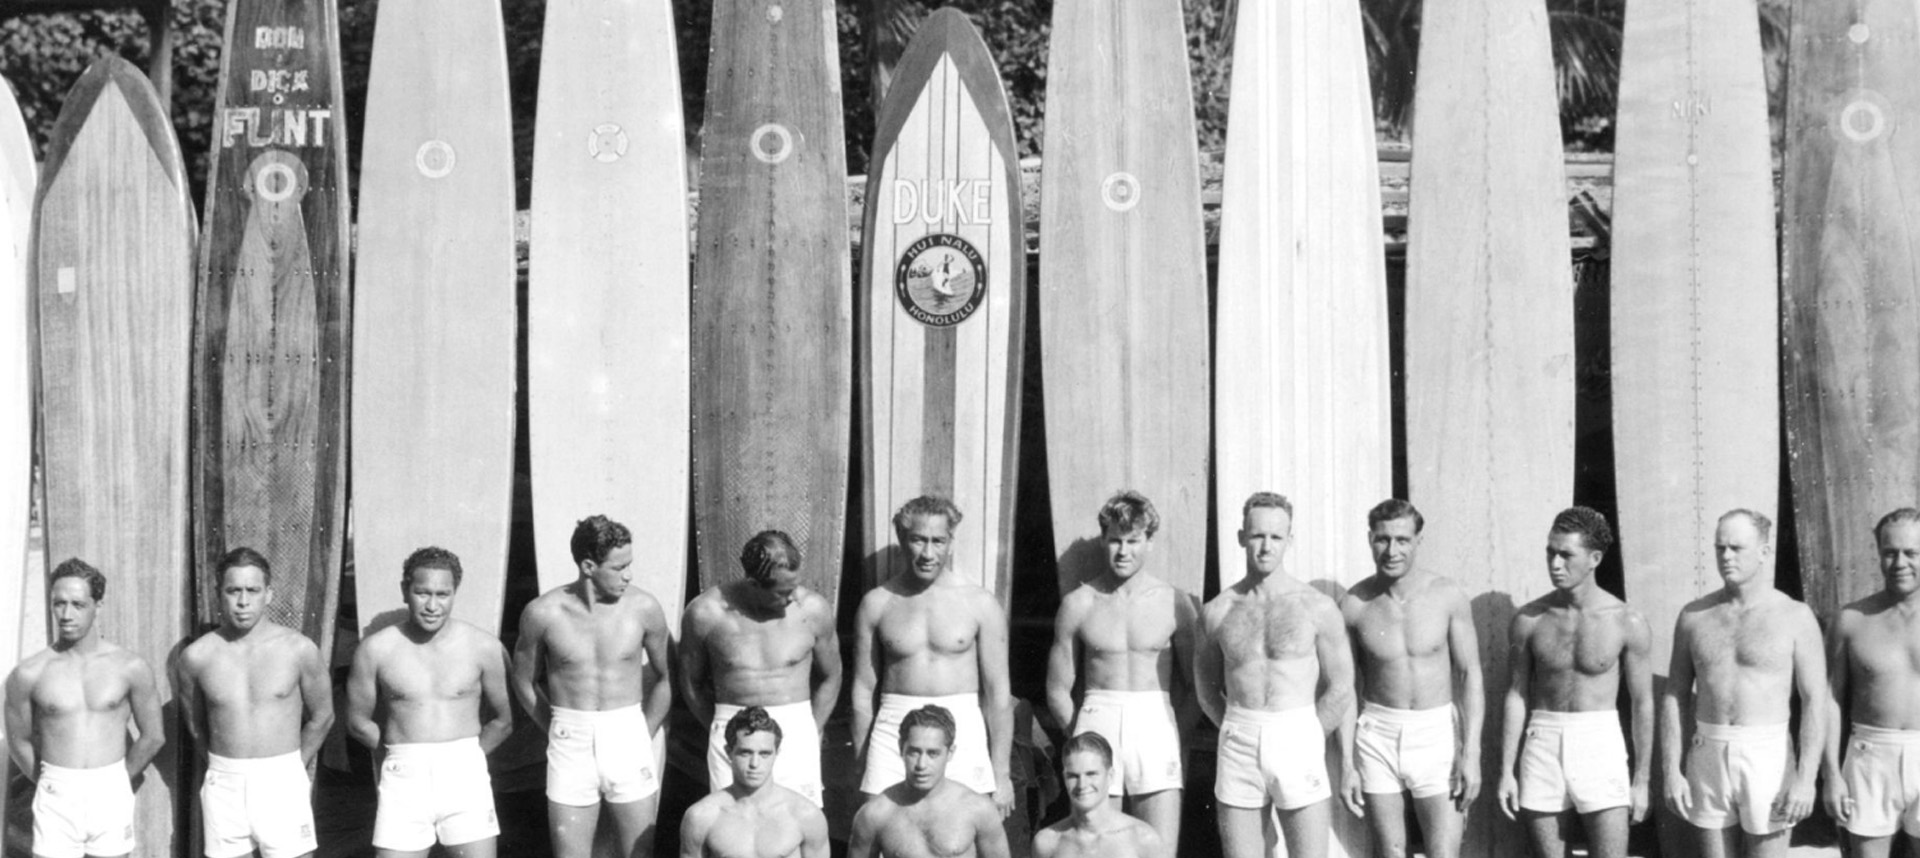 Duke and other men lined up next to surfboards